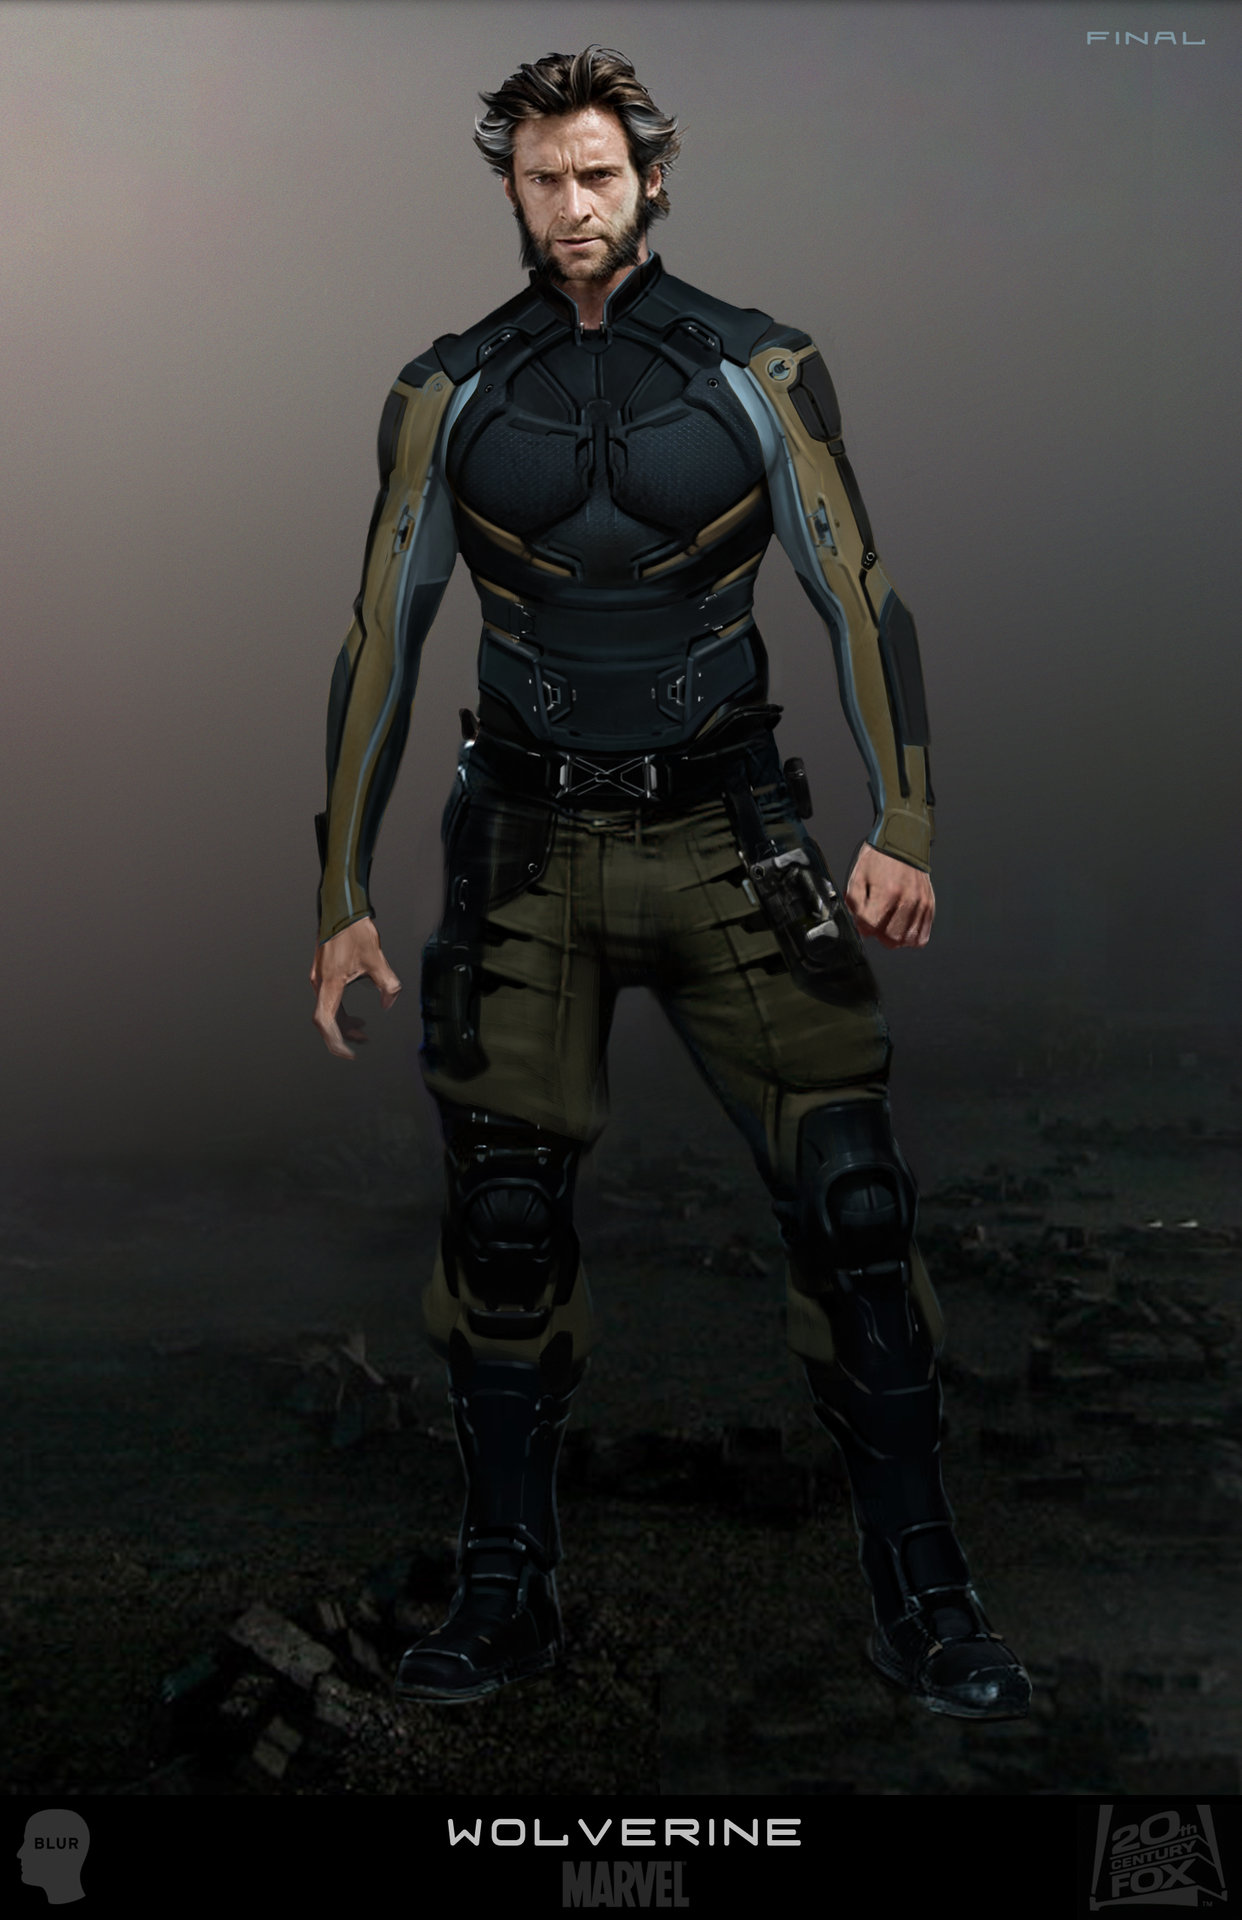 x-men days of future past wolverine concept art joshua james (6)